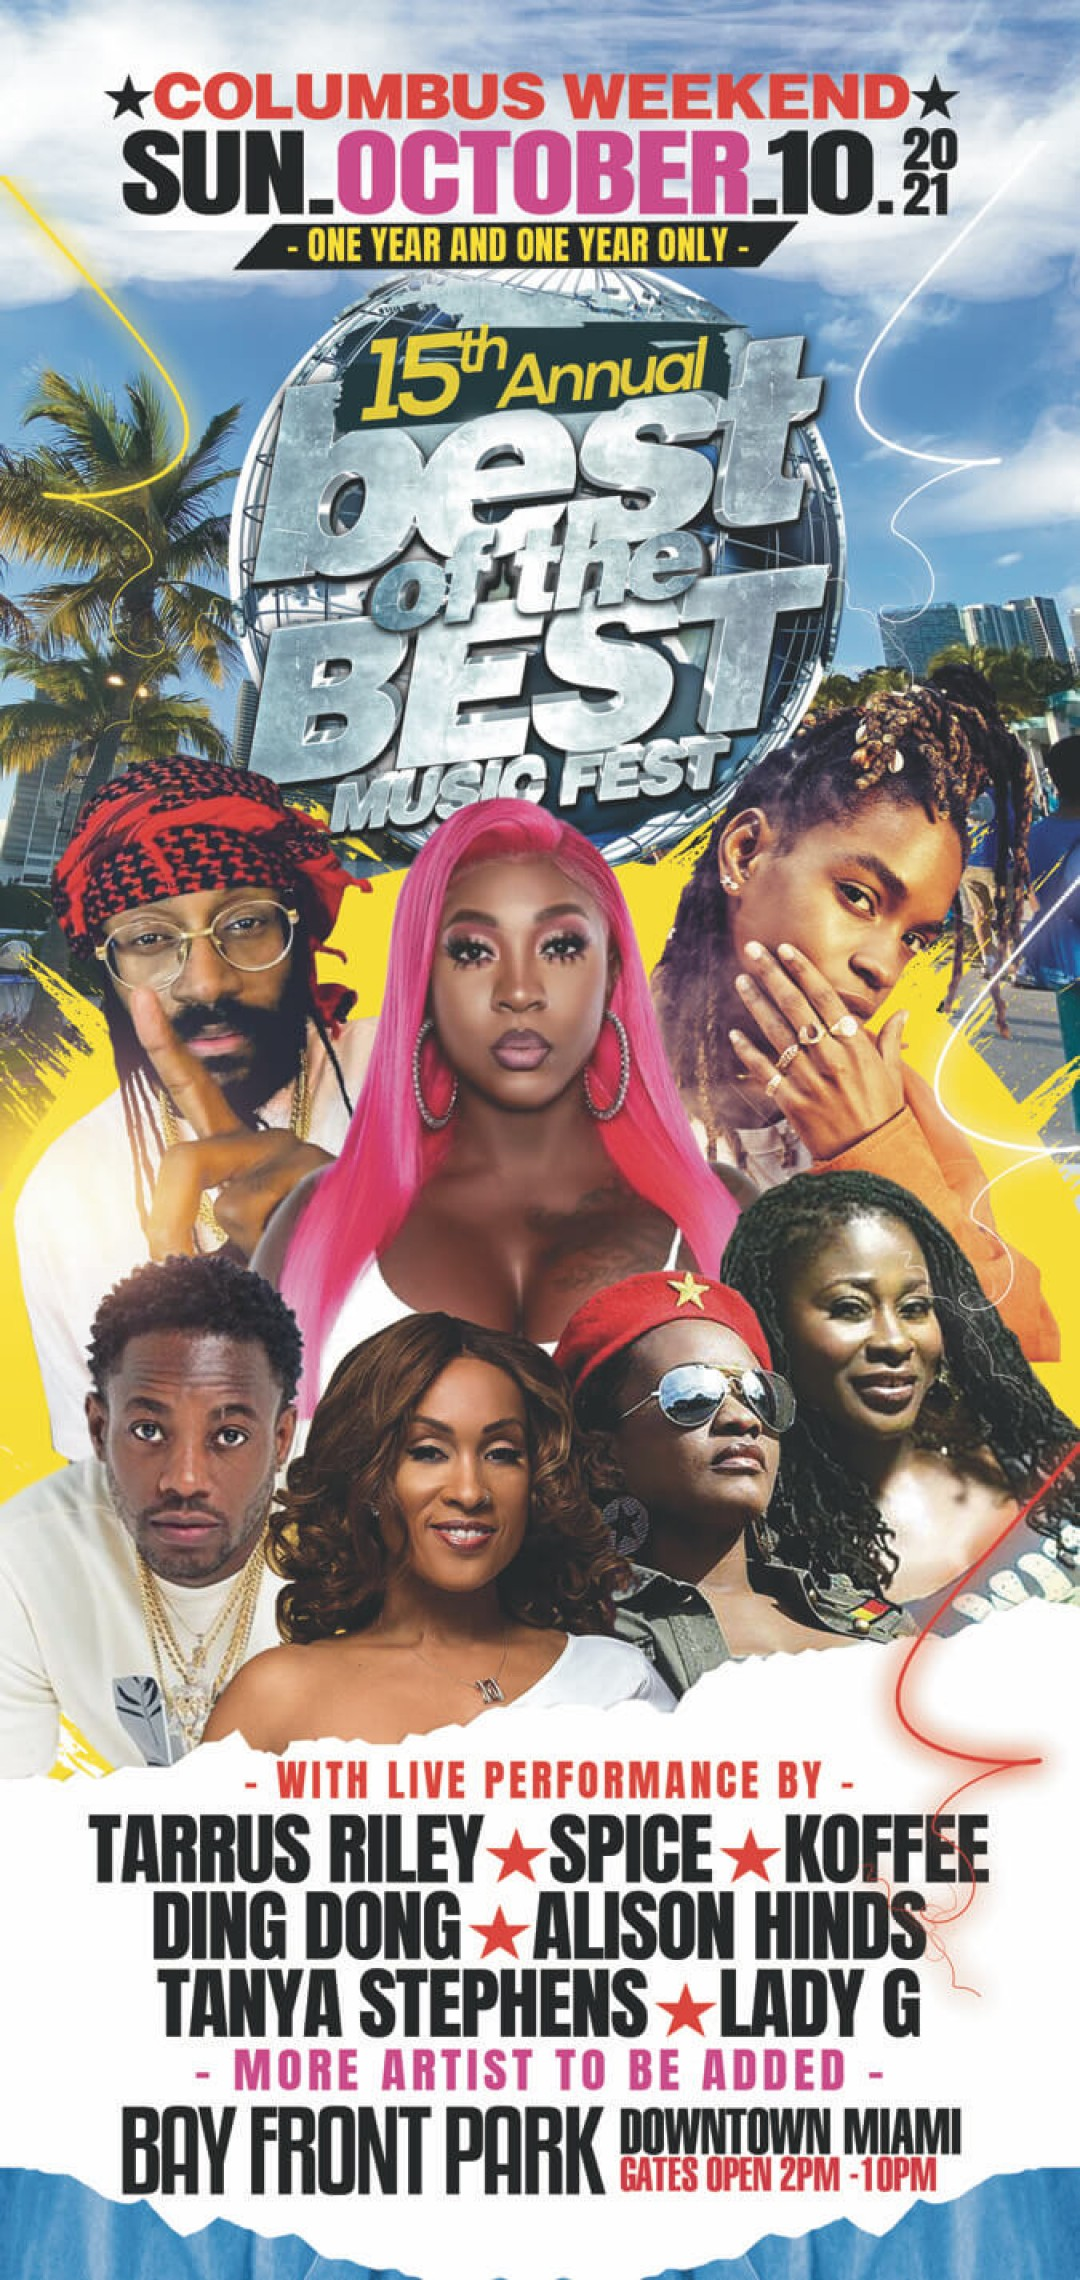 Best of The Best Concert  Miami With Koffee , Spice , tarrus riley